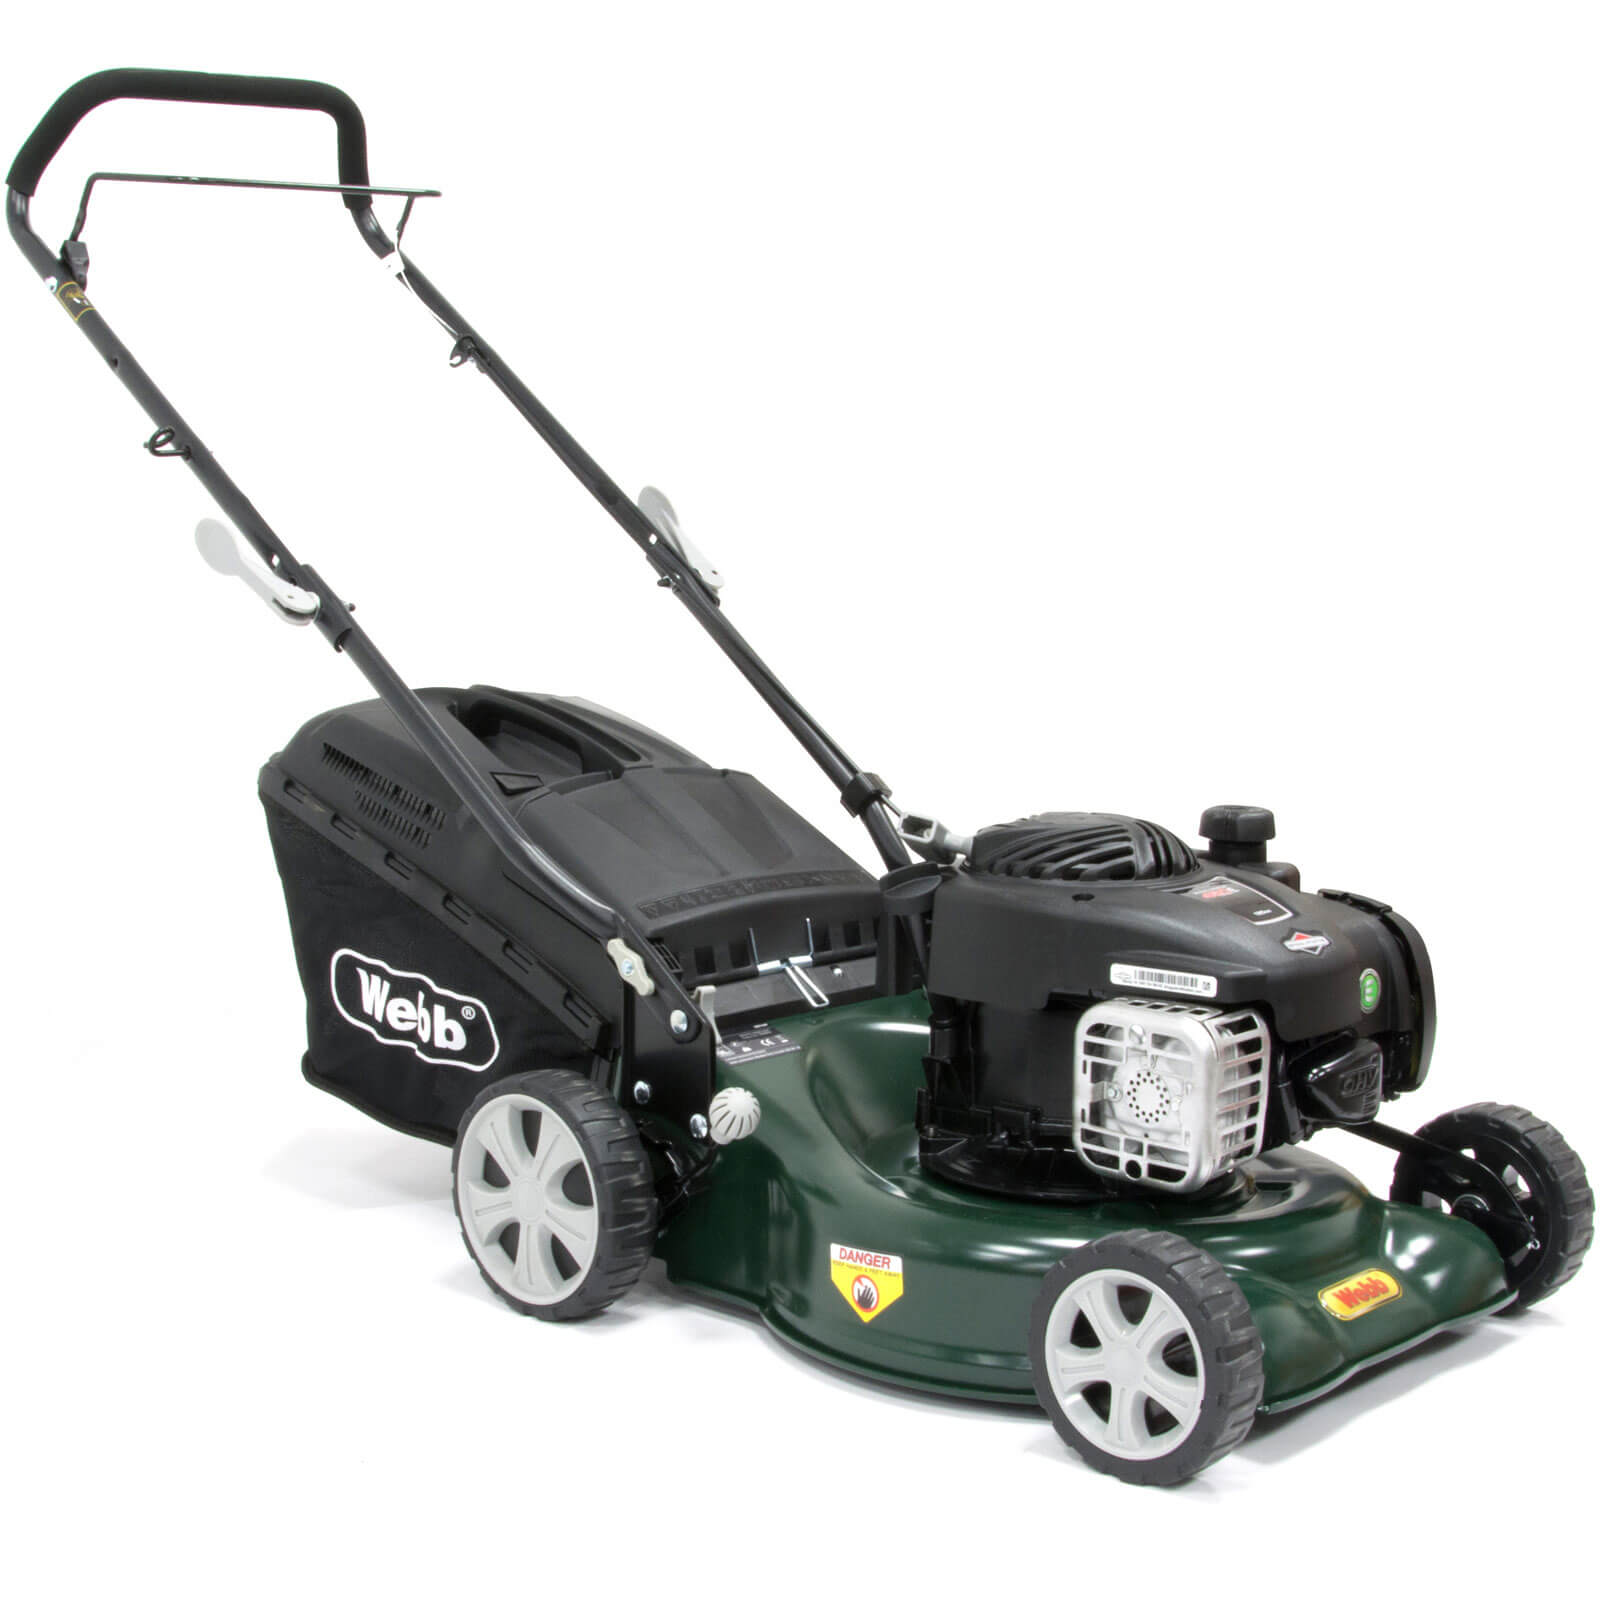 Image of Webb WER16HP Push Petrol Rotary Lawnmower 420mms